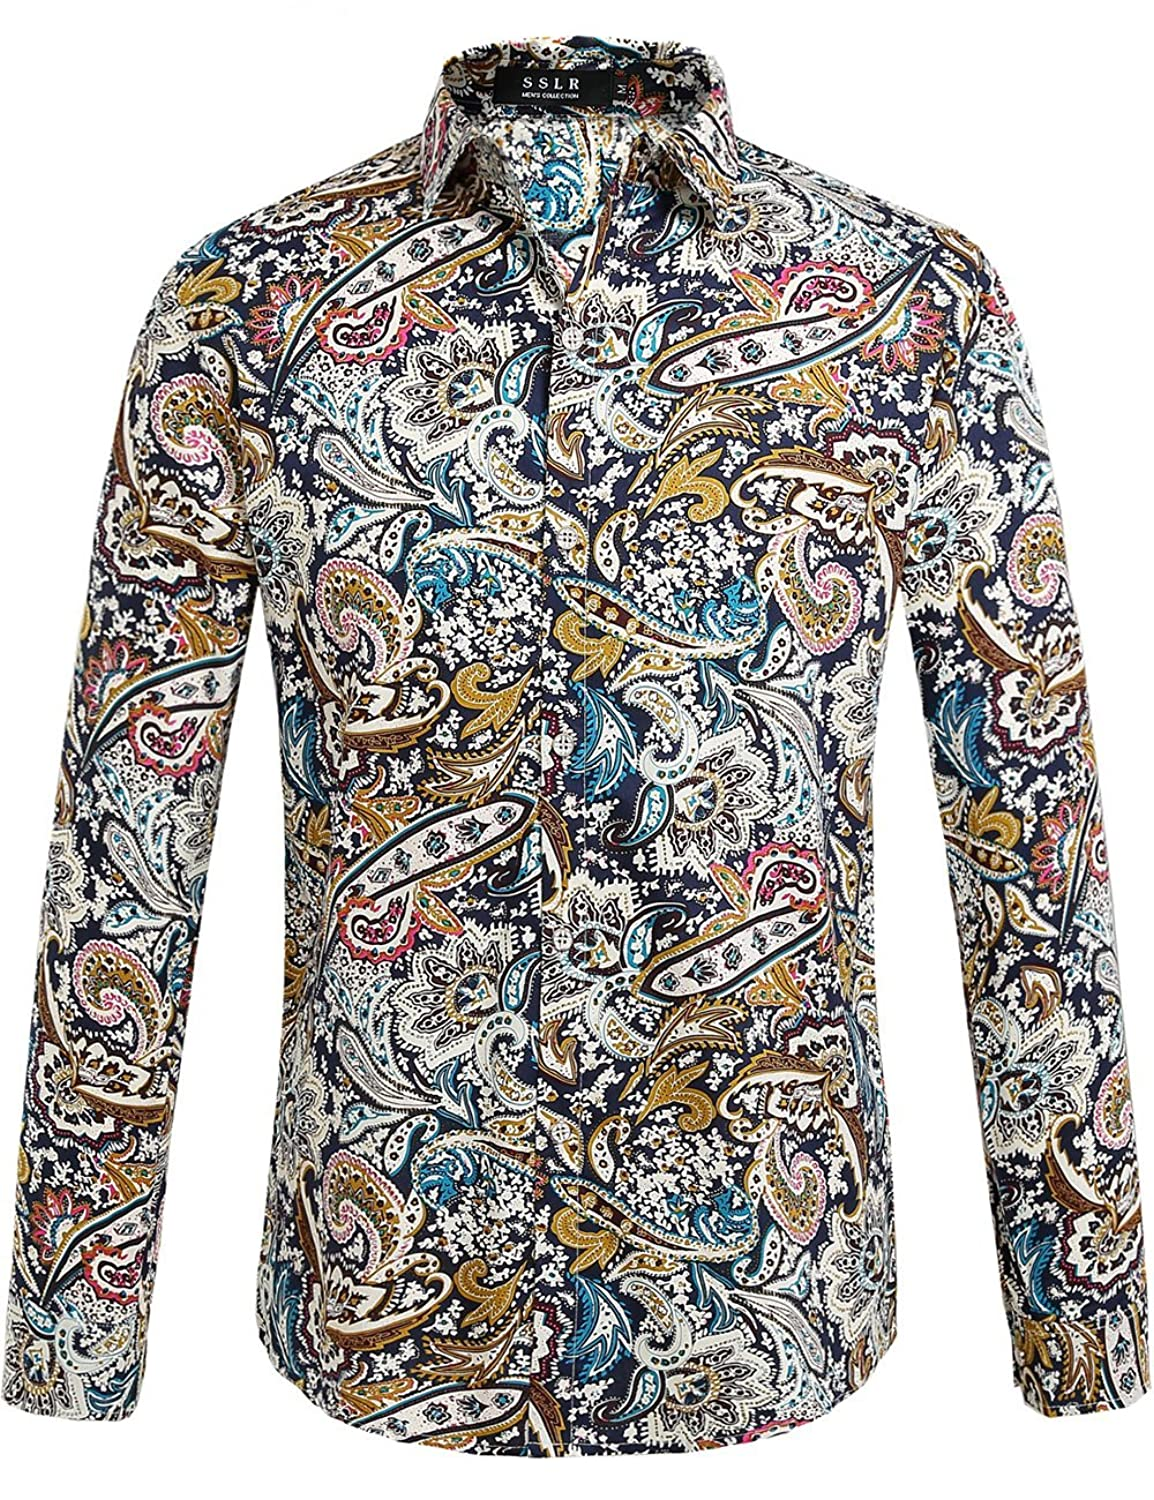 Mens Vintage Shirts – Casual, Dress, T-shirts, Polos SSLR Mens Paisley Cotton Long Sleeve Casual Button Down Shirt $26.00 AT vintagedancer.com